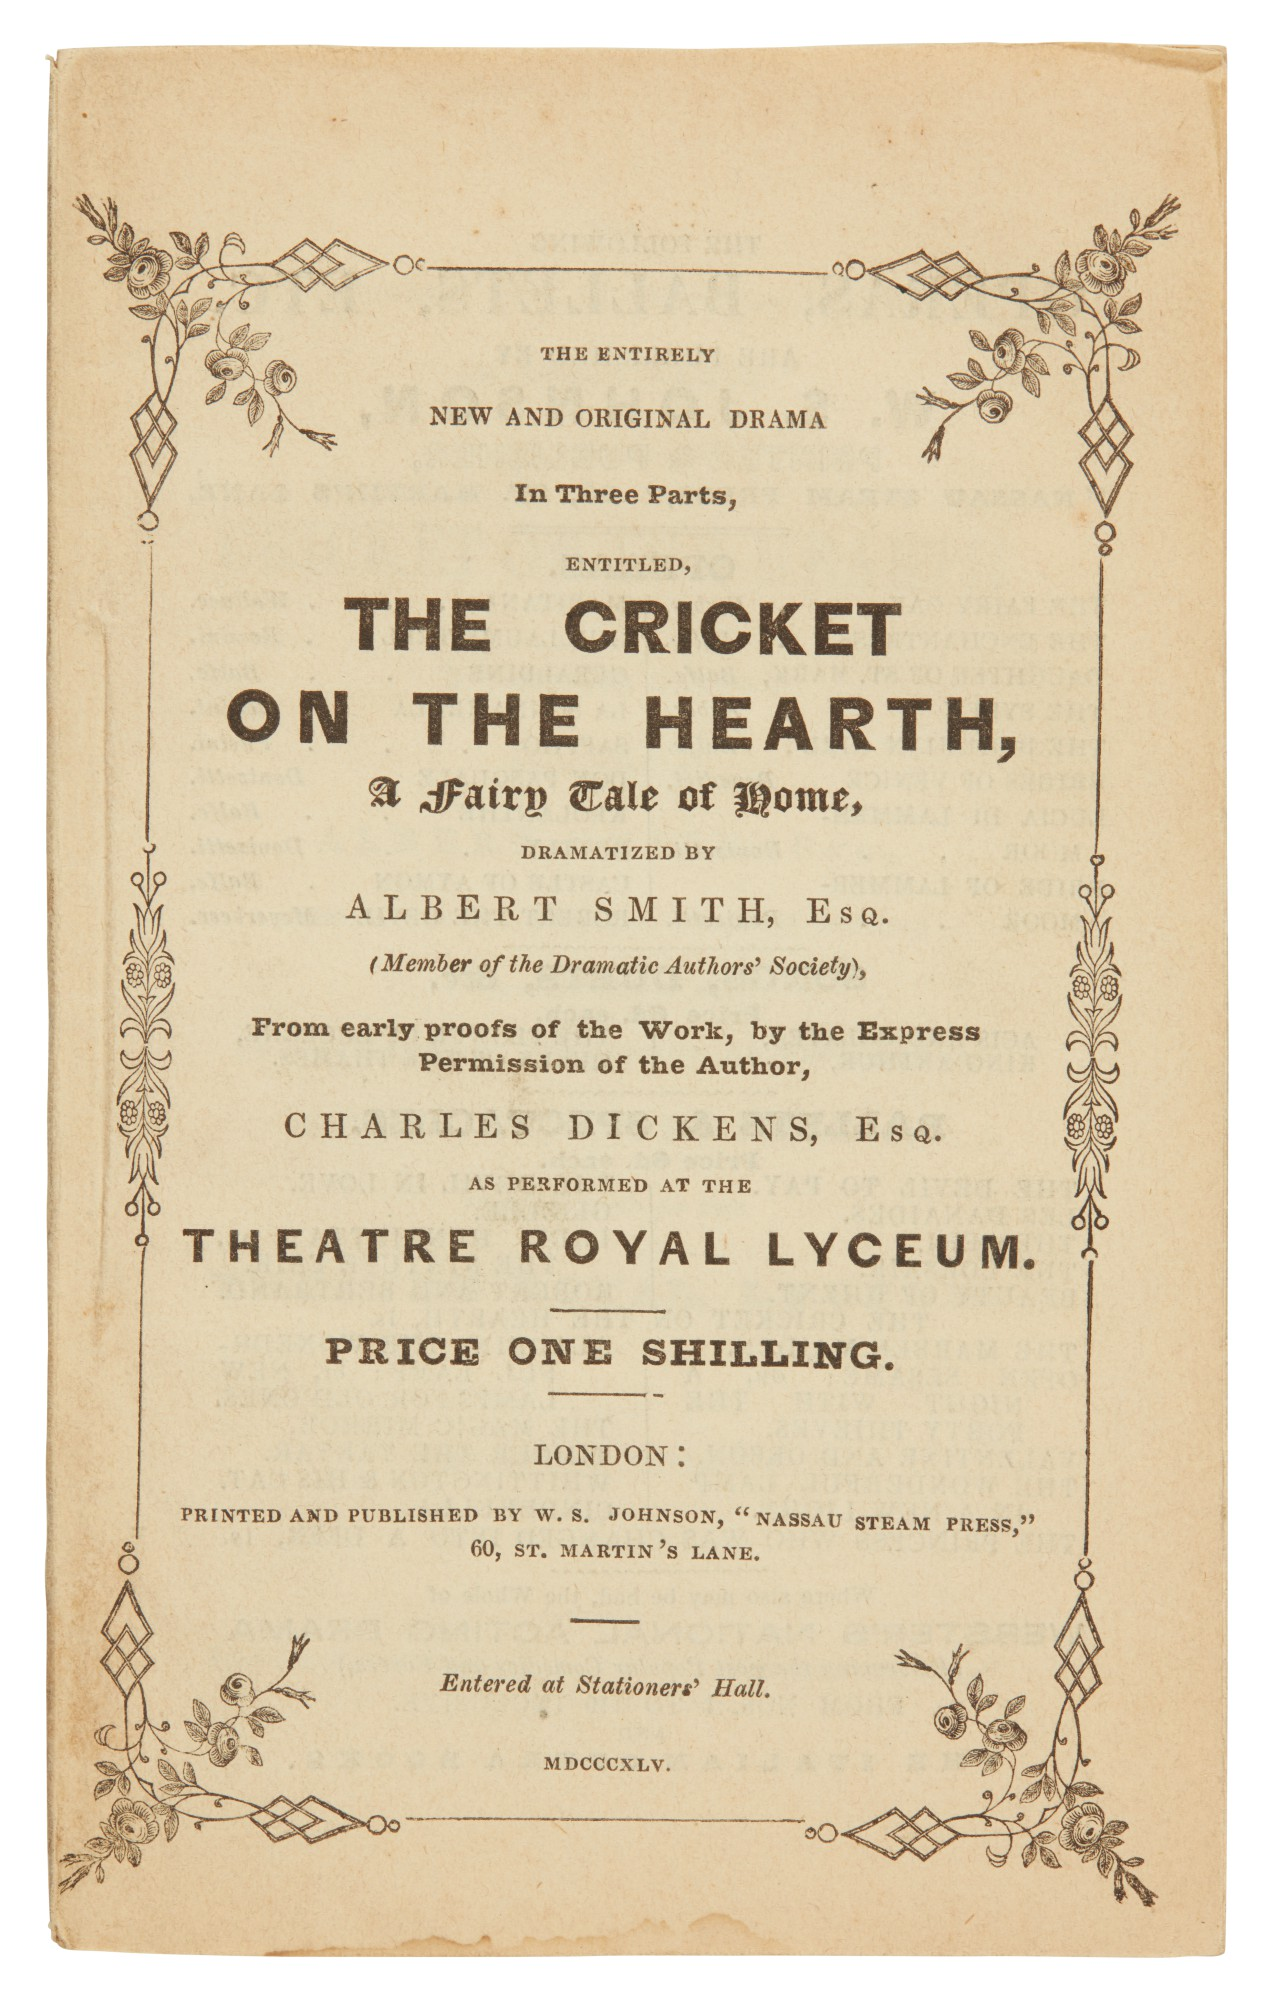 Dickens, The Cricket on the Hearth...Dramatized by Albert Smith, 1845, first edition